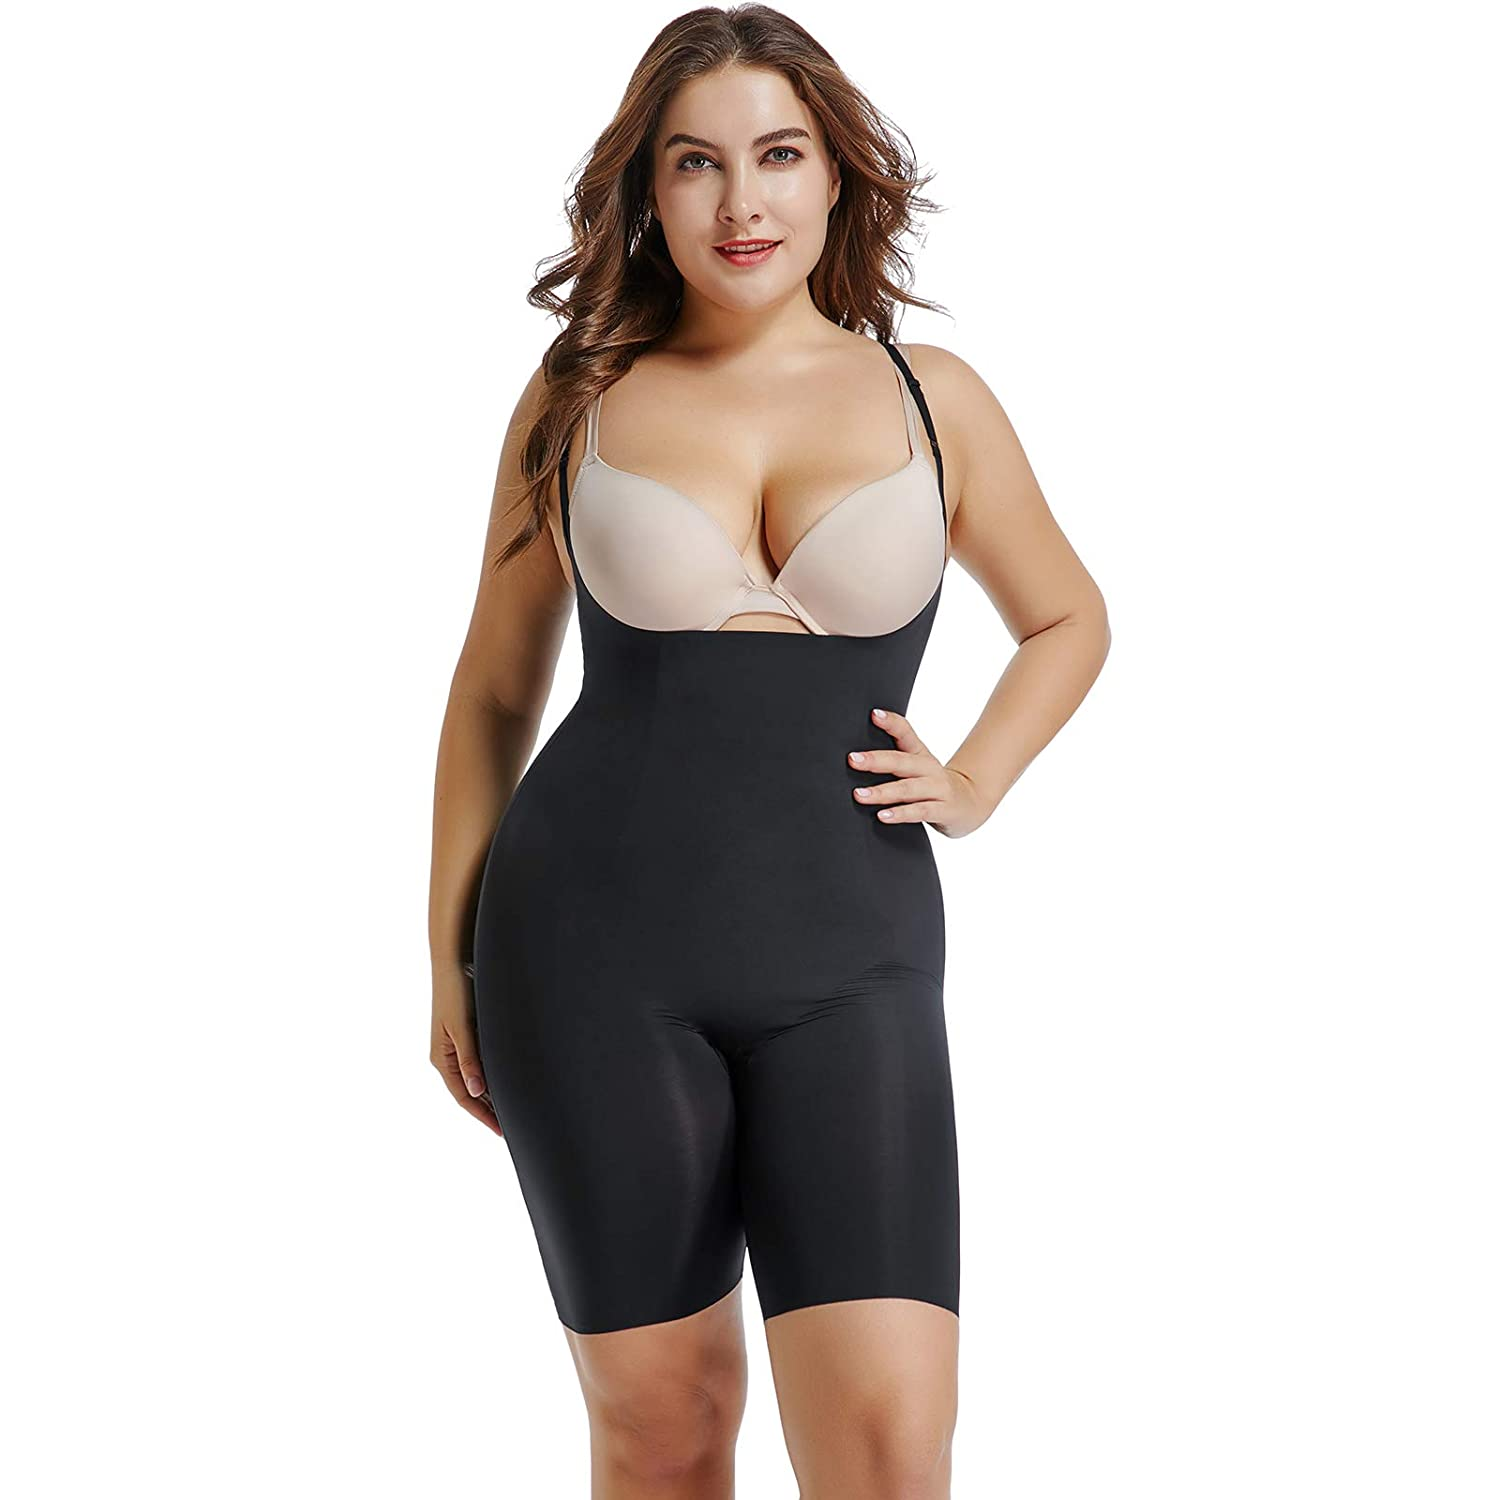 add499e15131b Joyshaper Mid Thigh Shapewear Bodysuit for Women Slimming Open Bust Tummy  Control Body Shaper Seamless Waist Trainer Wear Your Own Bra Underwear Anti  ...